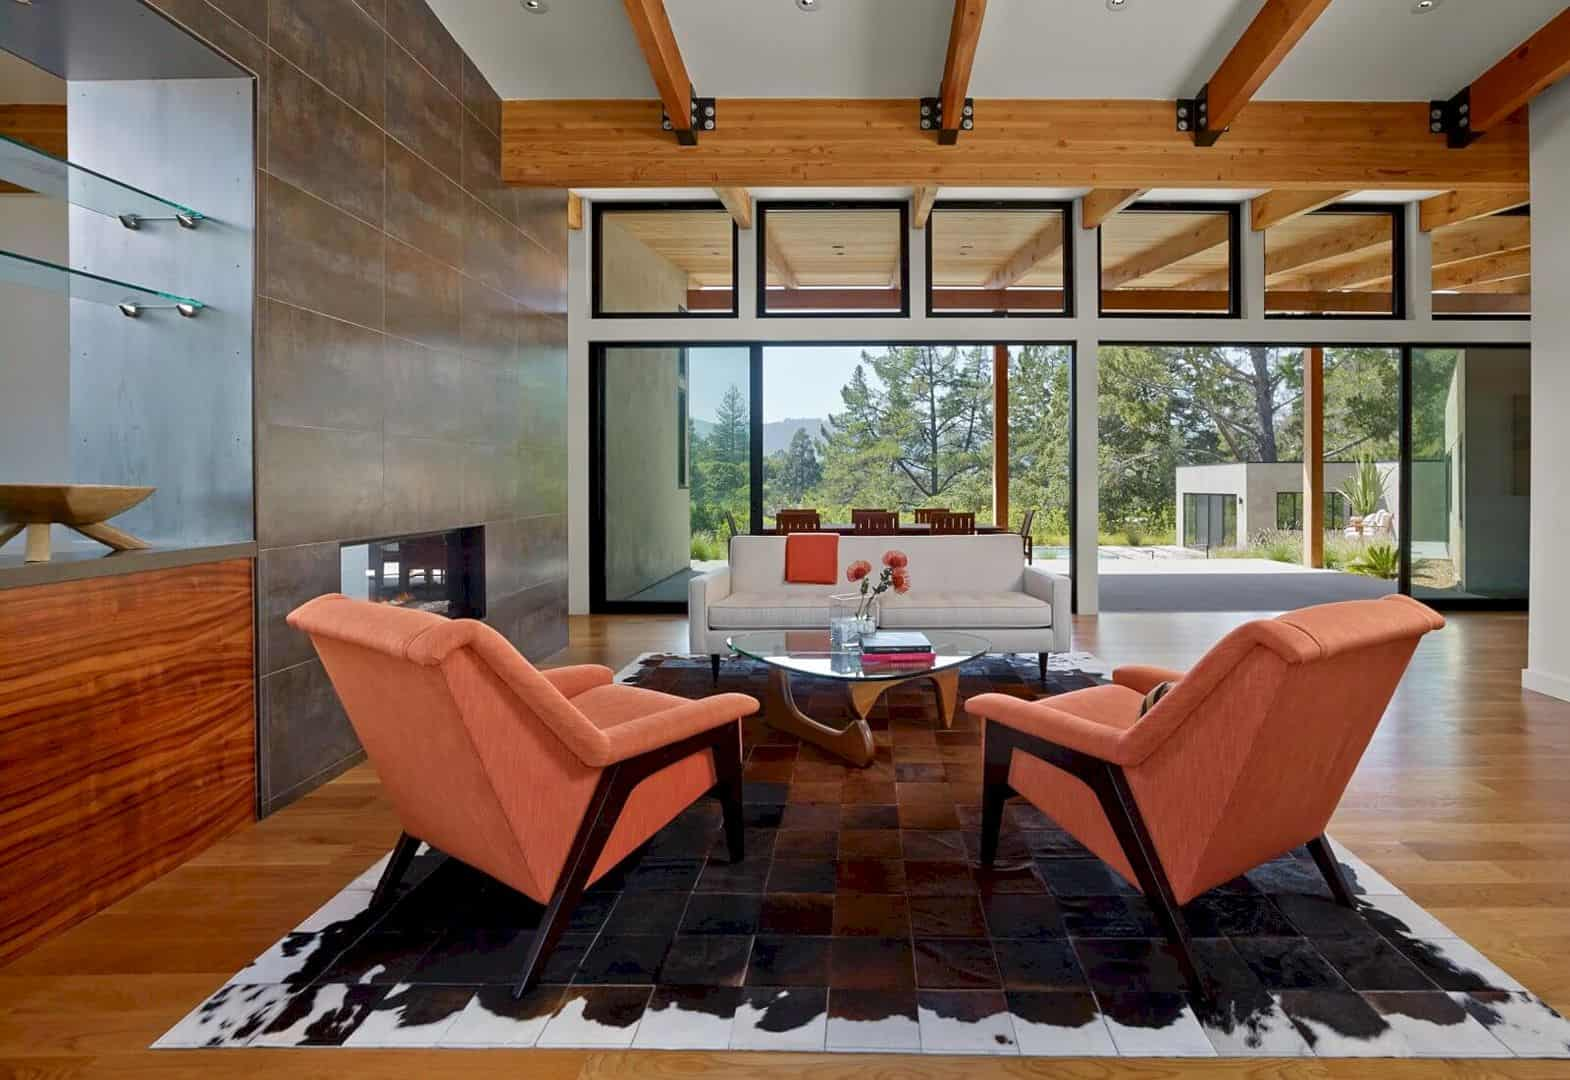 Golden Oak Residence A Light Filled House That Takes Advantage Of Its Bucolic Site 4